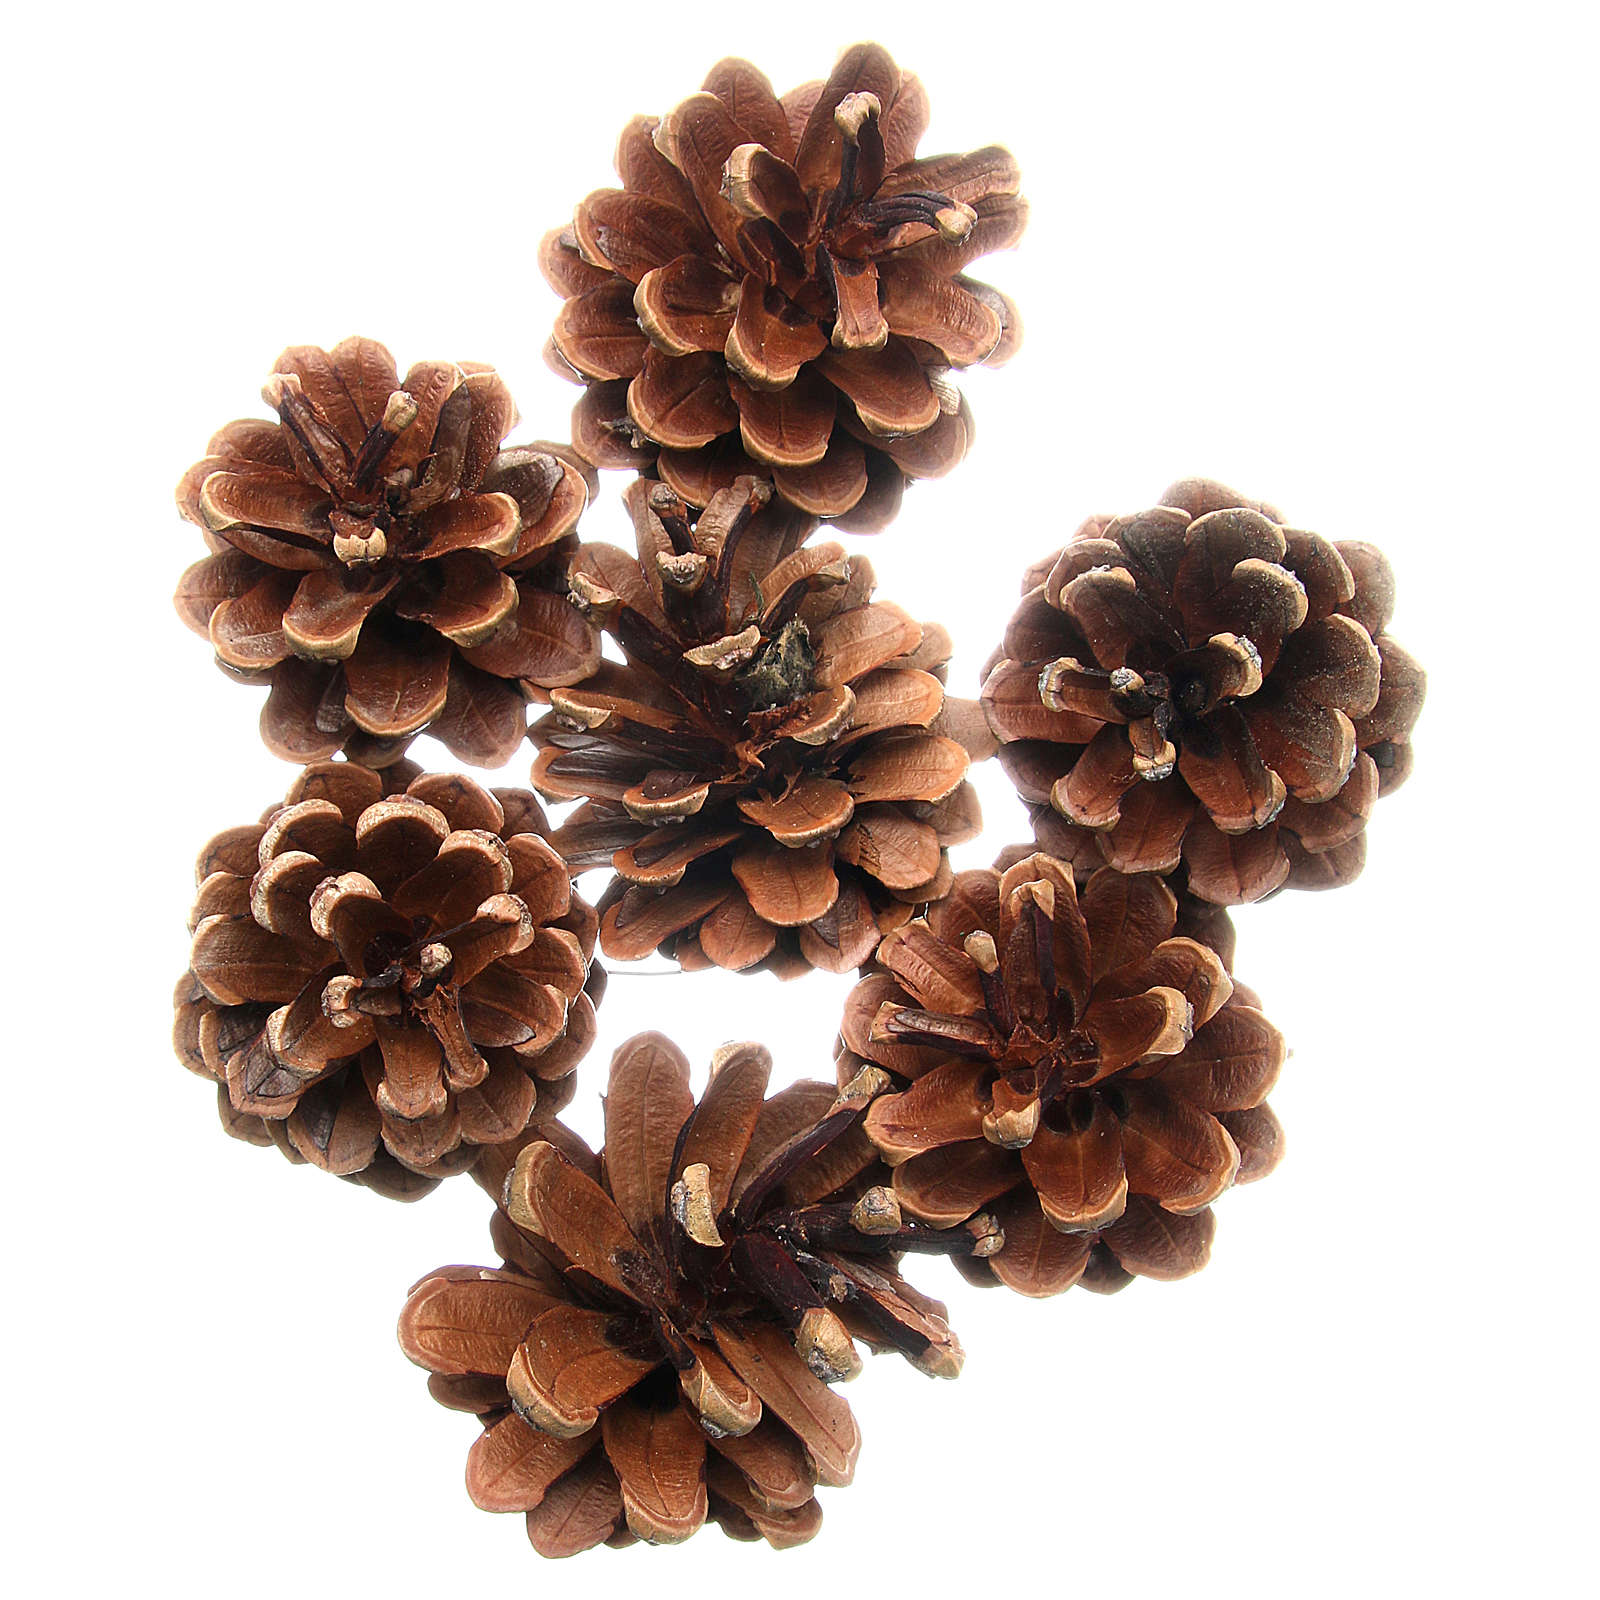 Pine cones, pack of 75grams 3